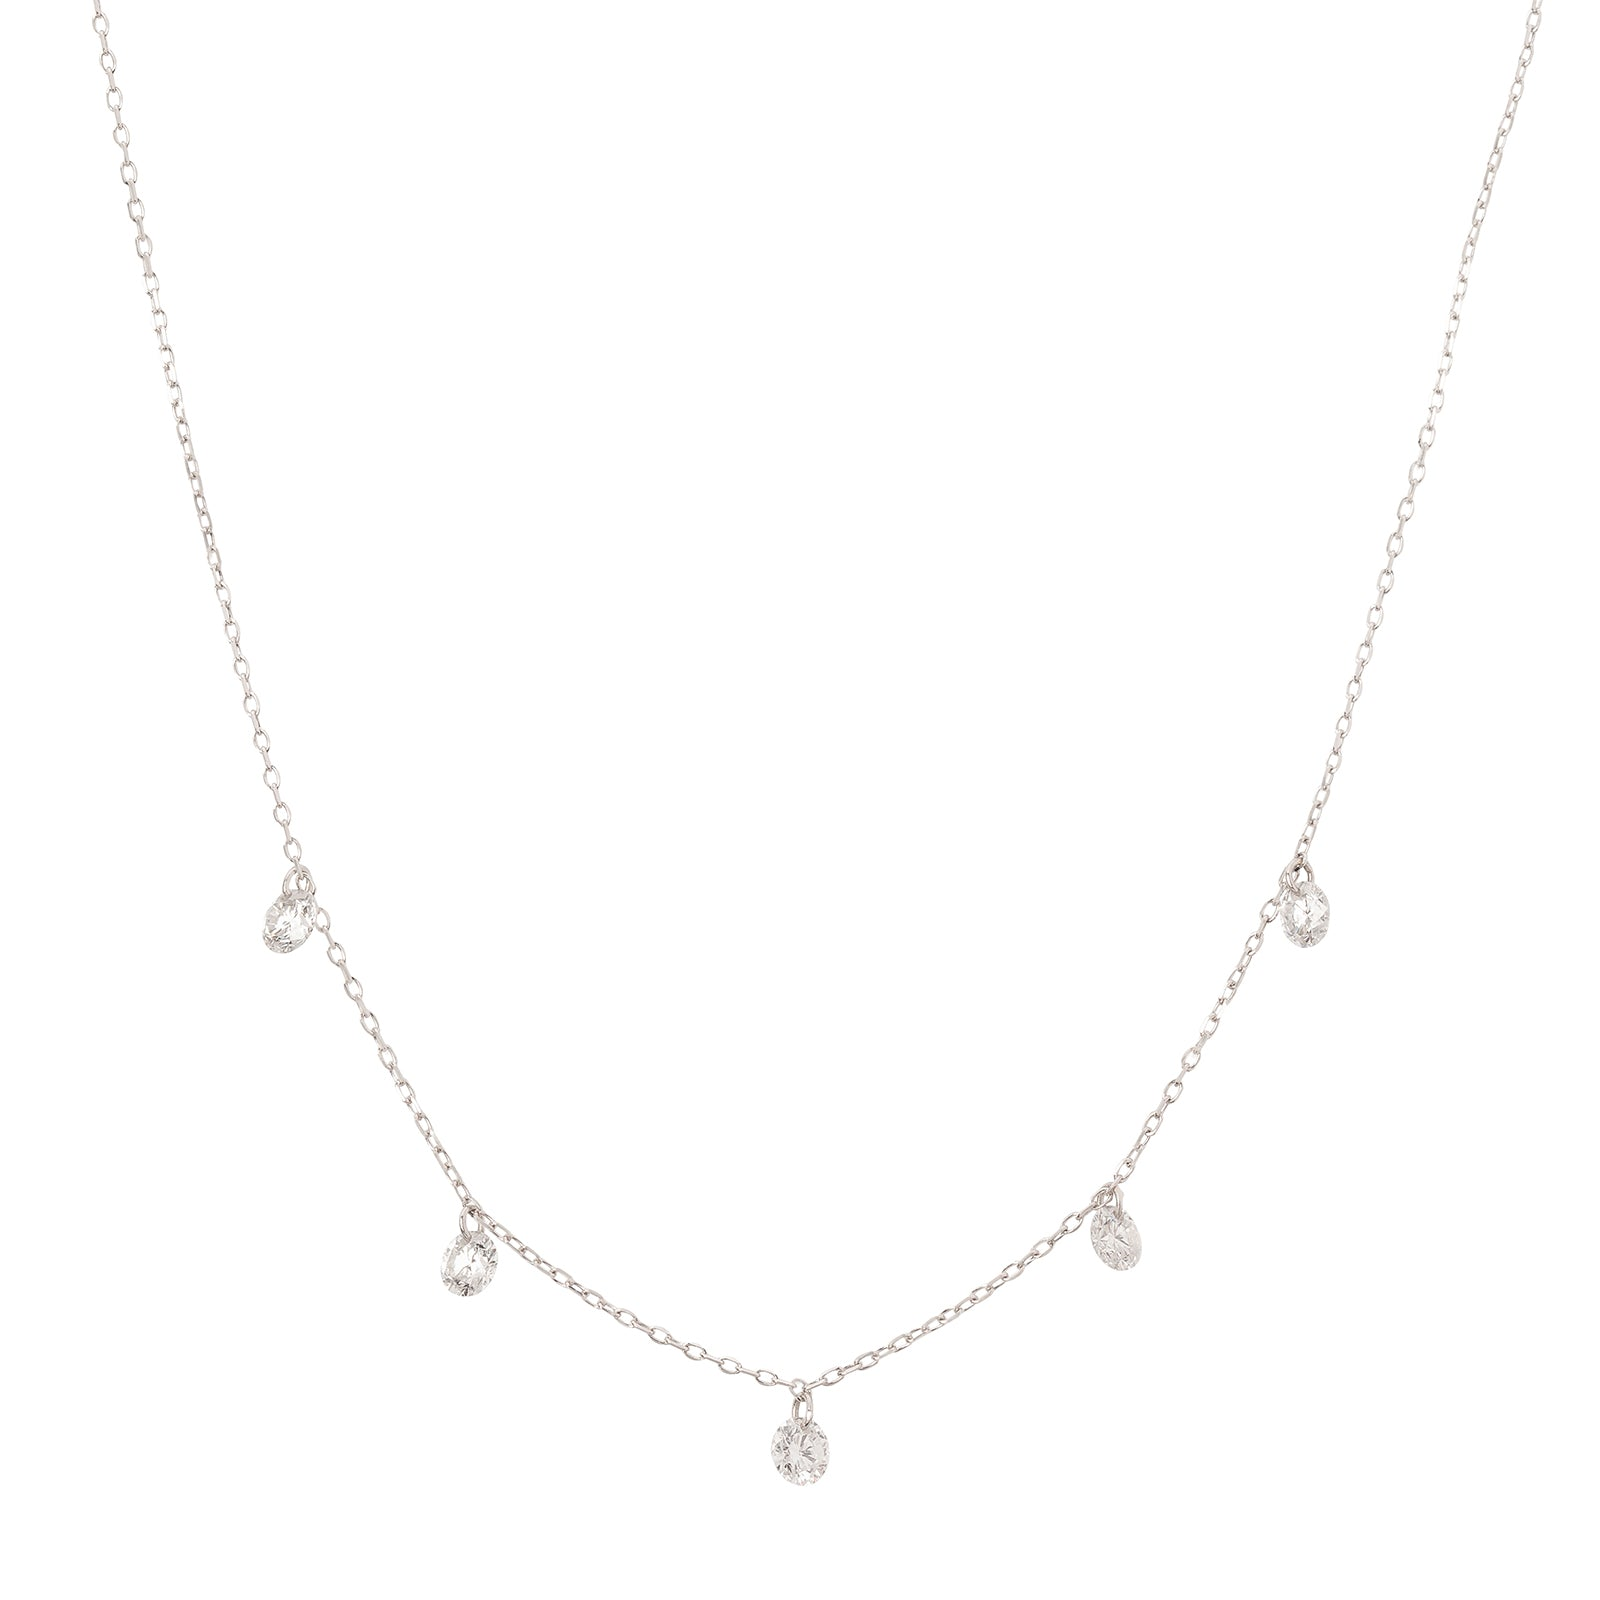 Persée Paris Danaé Five Hanging Diamond Necklace - Necklaces - Broken English Jewelry